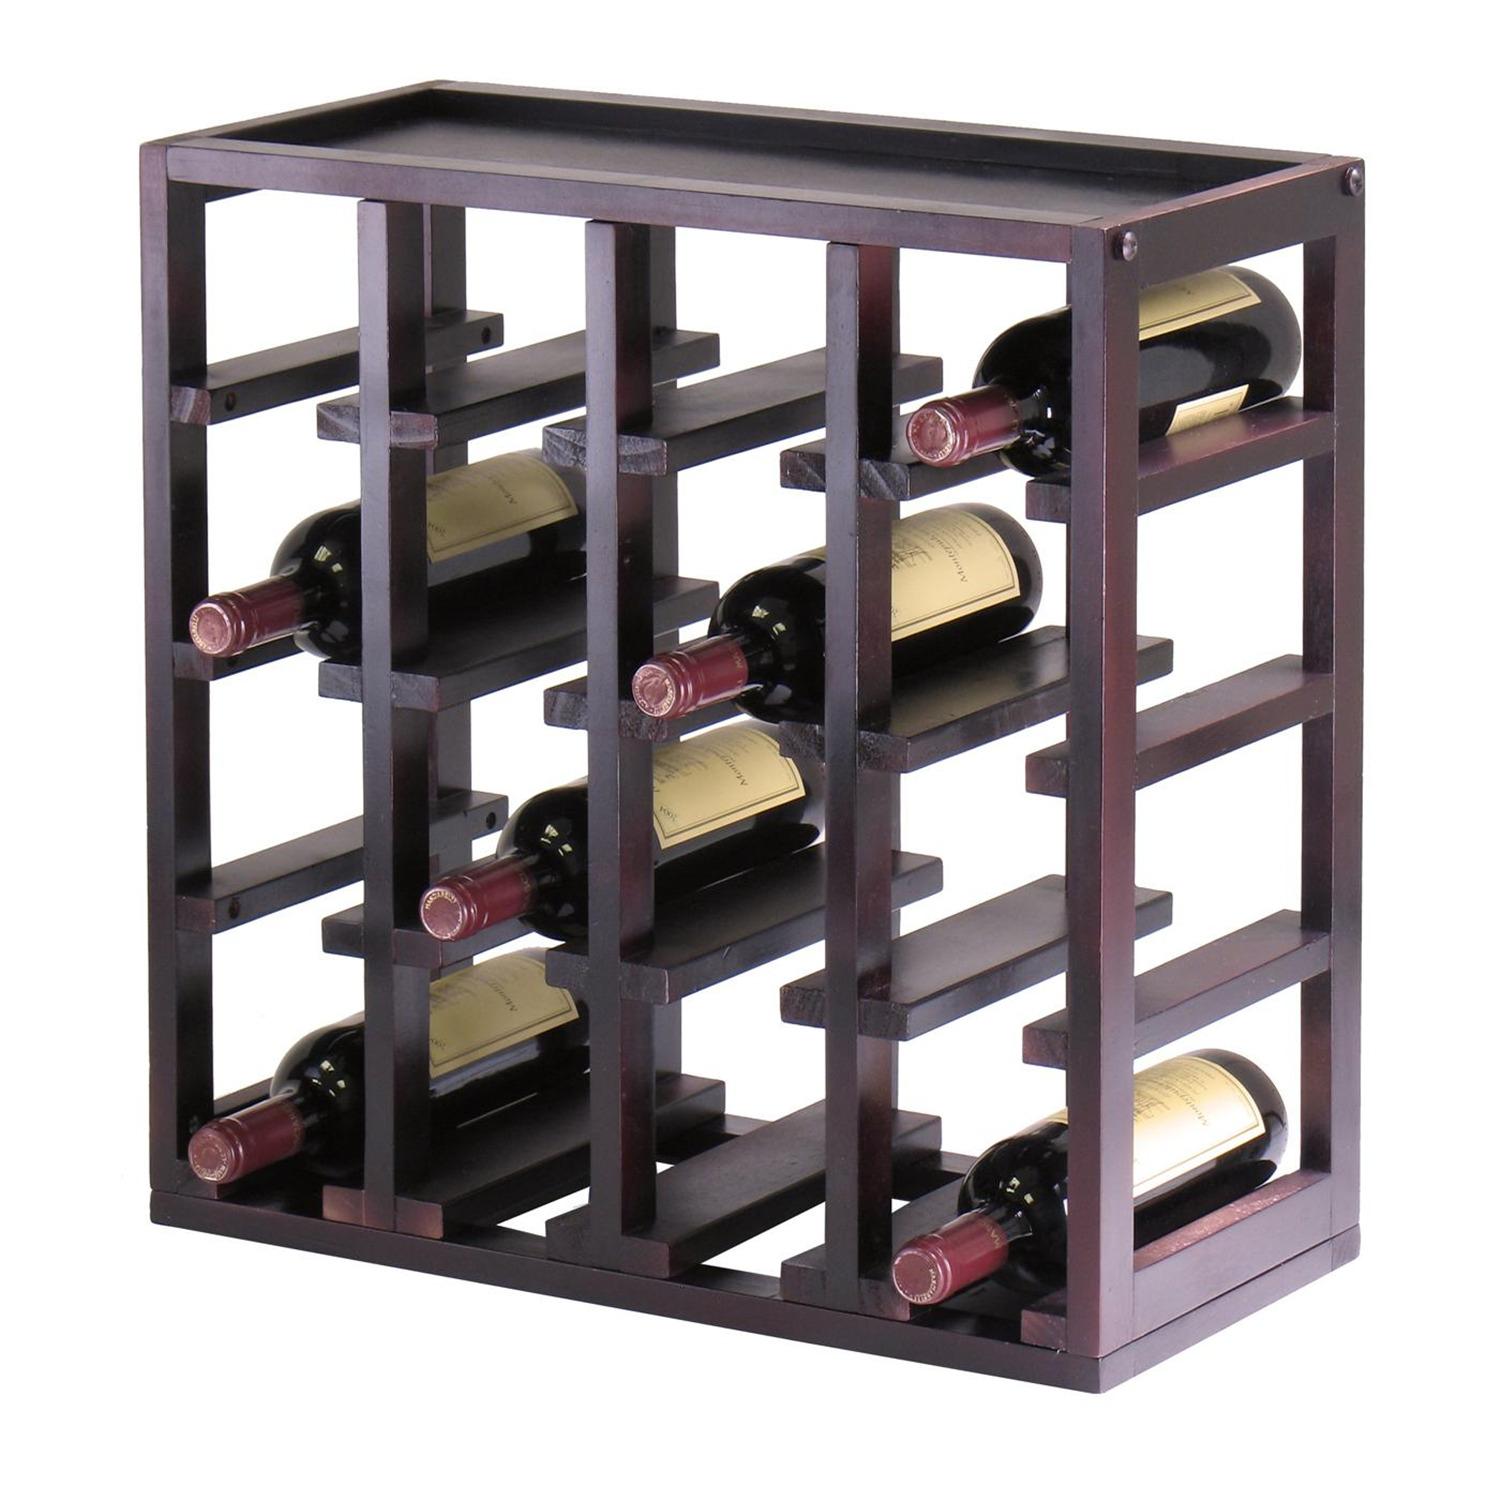 Small Exhibition Stand Alone : Winsome kingston stackable slot cube bottle wine